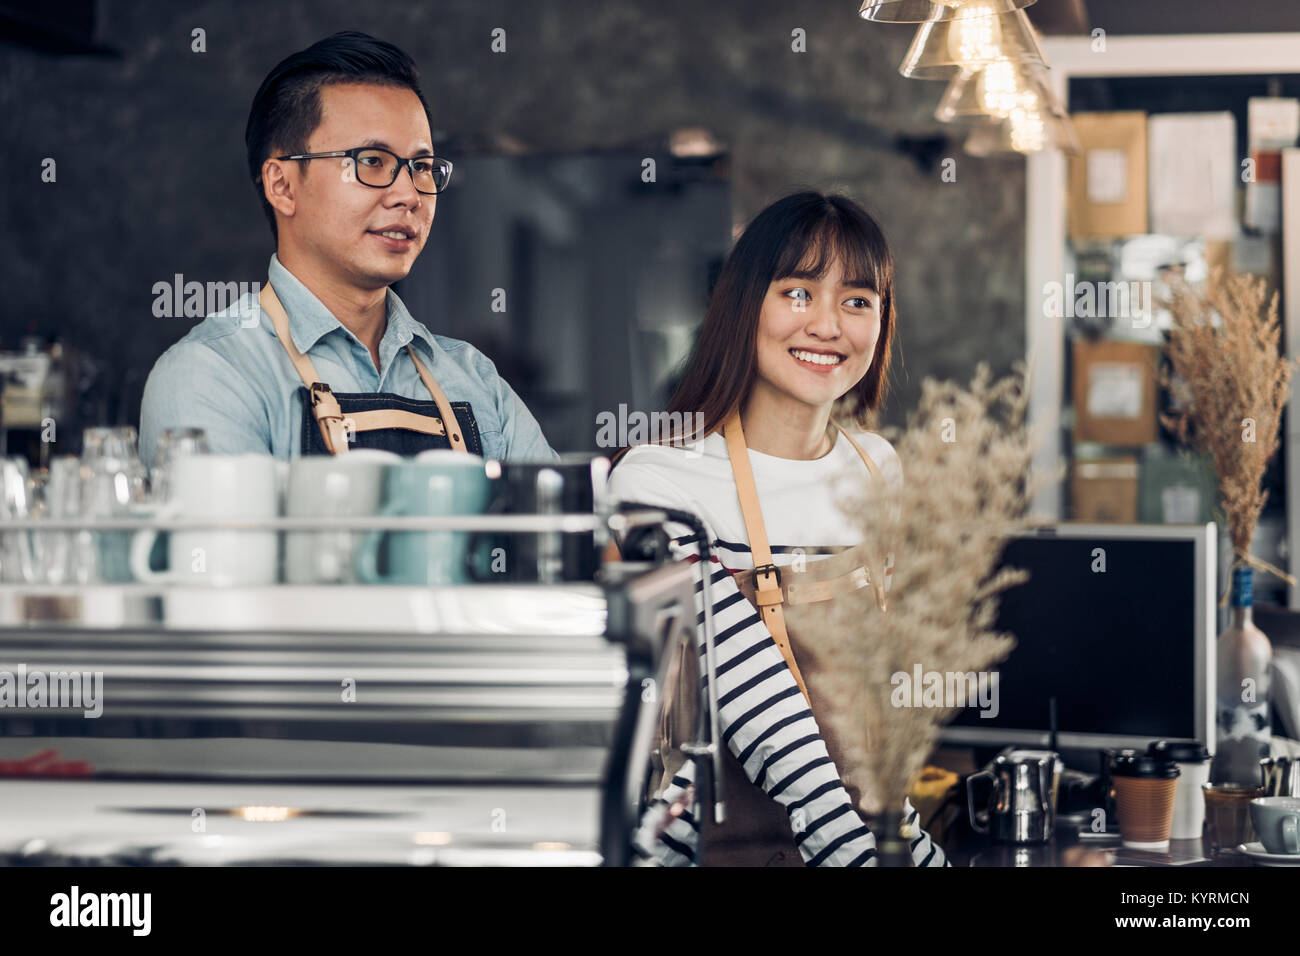 Asia Barista waiter smile and talking to customer in coffee shop,Two cafe owner at counter bar,Food and drink business - Stock Image